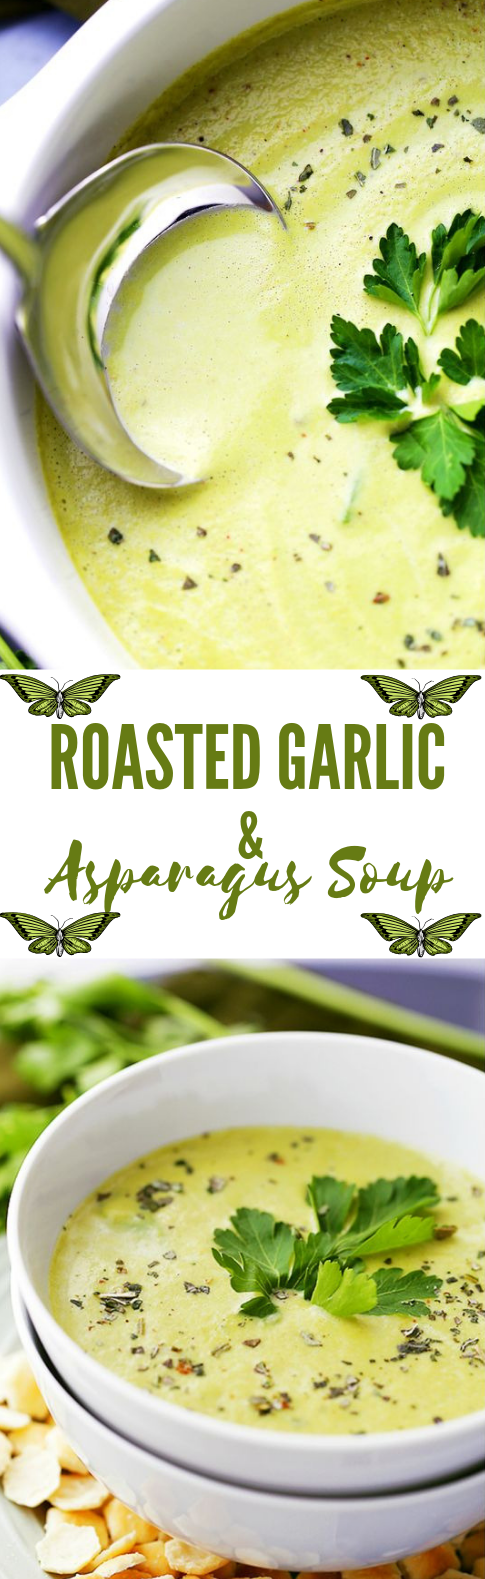 Roasted Garlic and Asparagus Soup #soup #asparagus #diet #keto #paleo